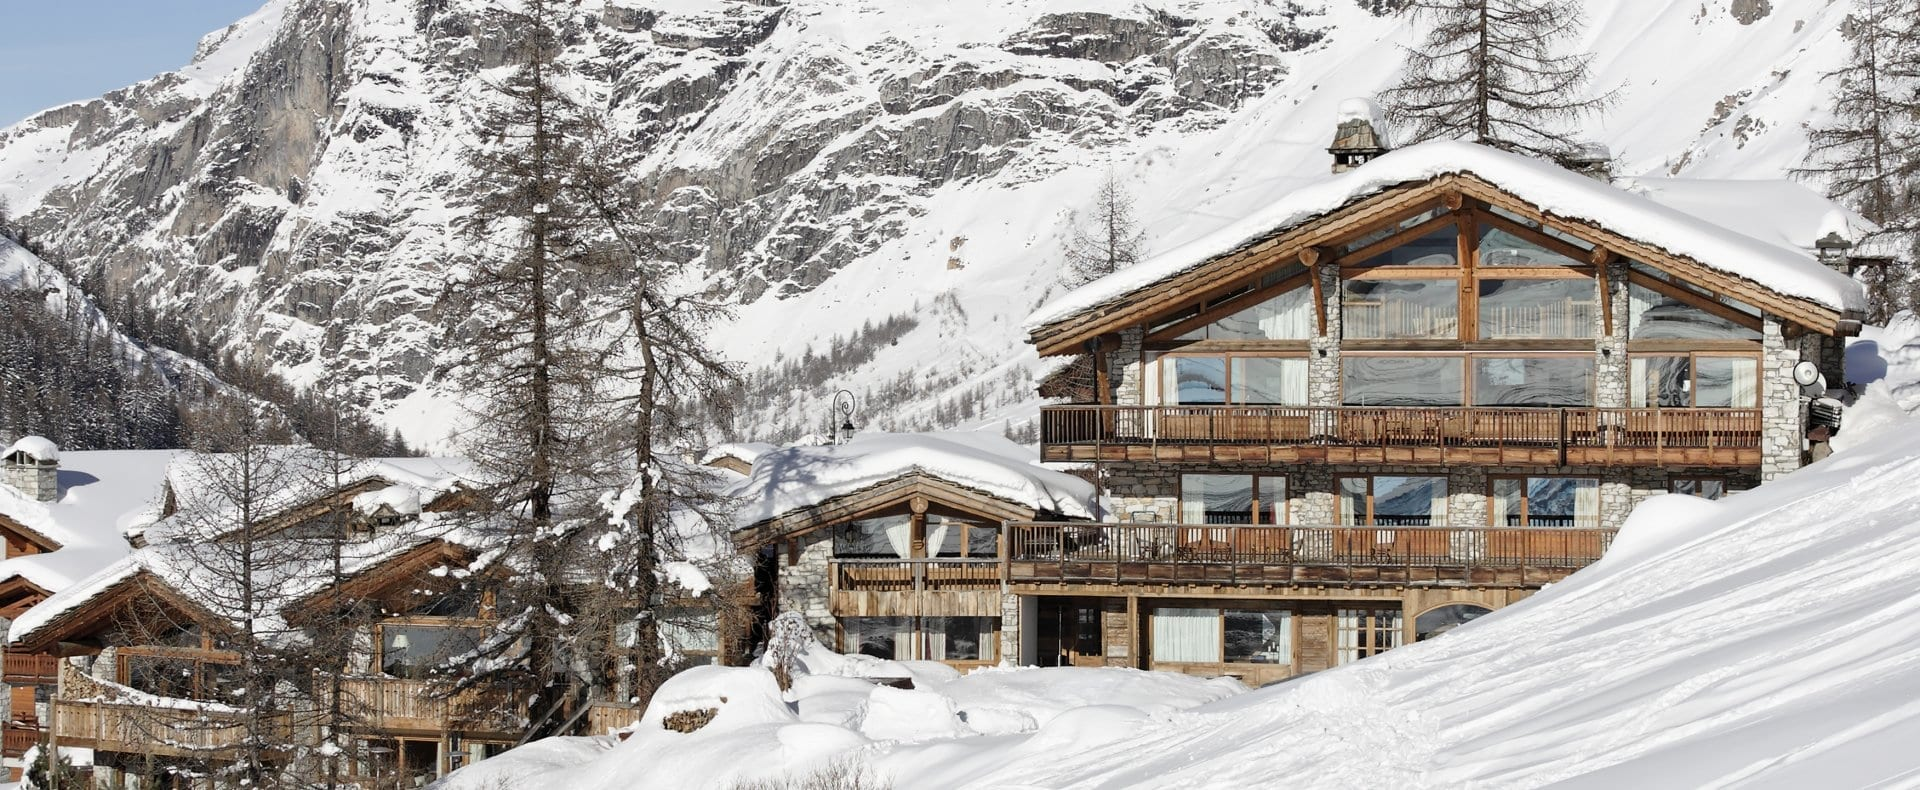 Exterior-Chalet-Le-Chardon-Val-d'Isere-Ultimate-Luxury-Chalets-UltraVilla